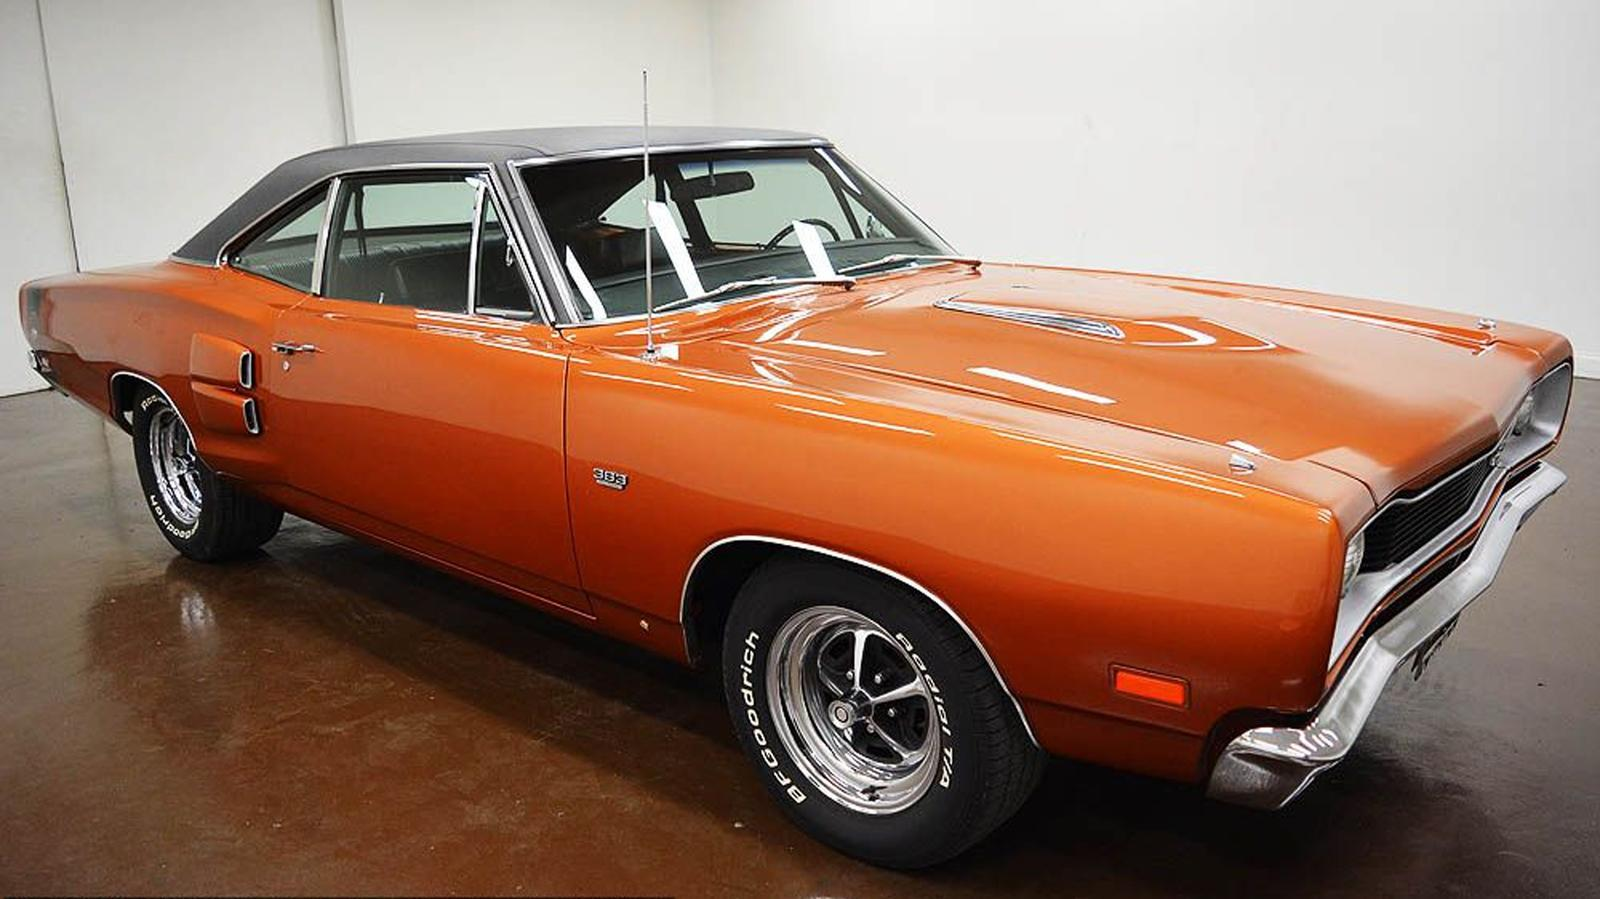 Hellcat Charger For Sale >> 1969 Dodge Coronet Super Bee Pictures, Photos, Wallpapers ...